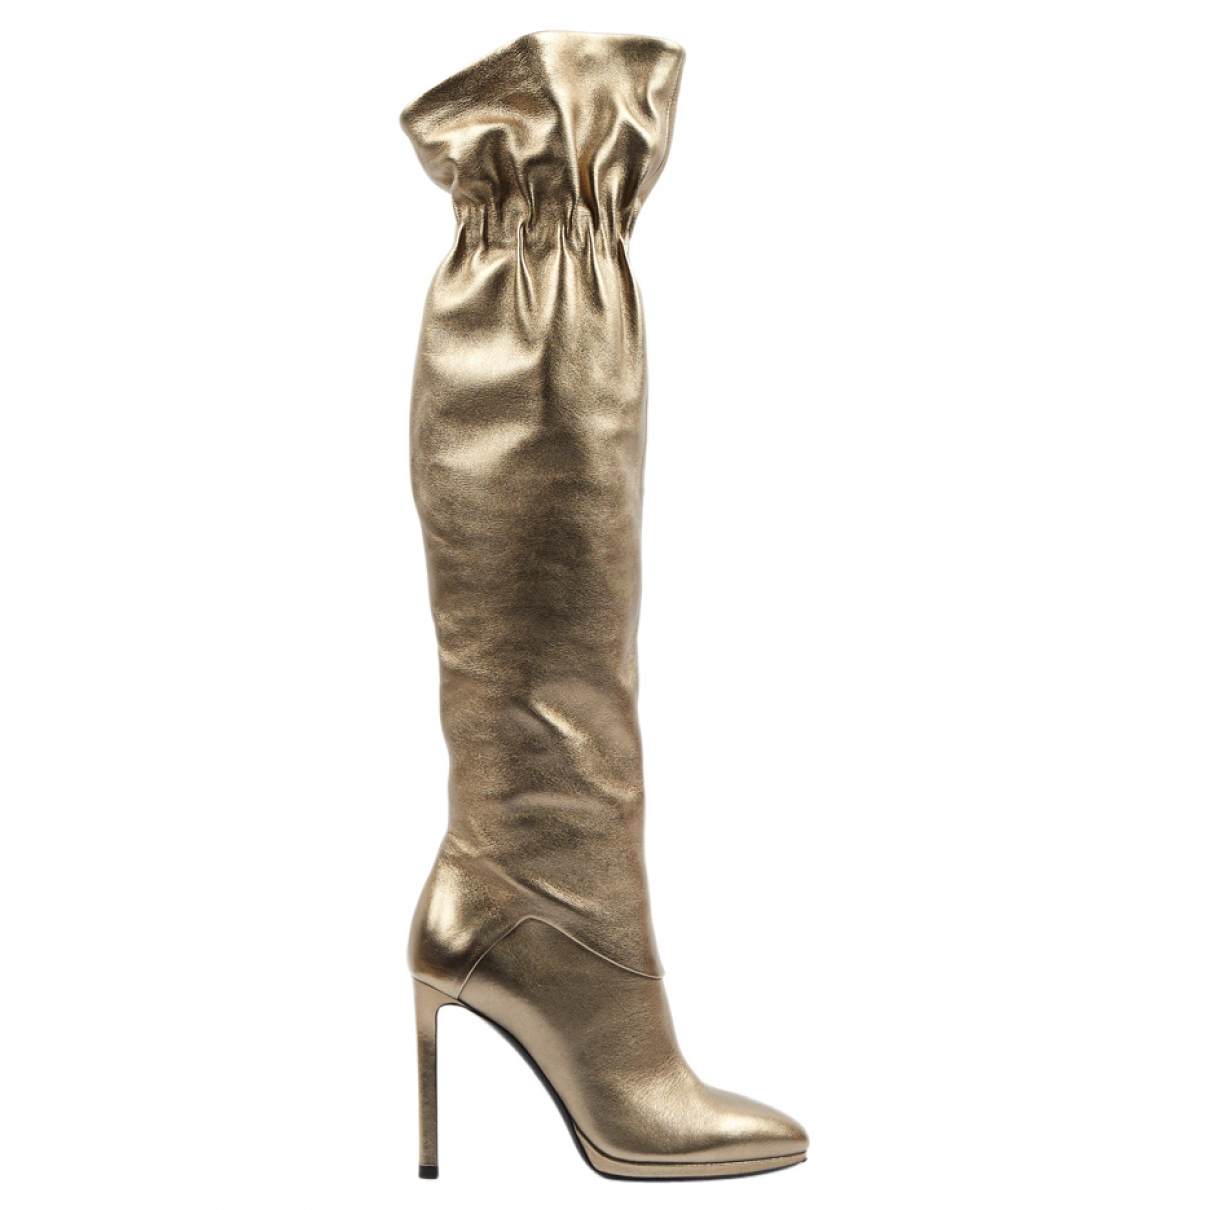 Roberto Cavalli \N Gold Leather Boots for Women 36 EU